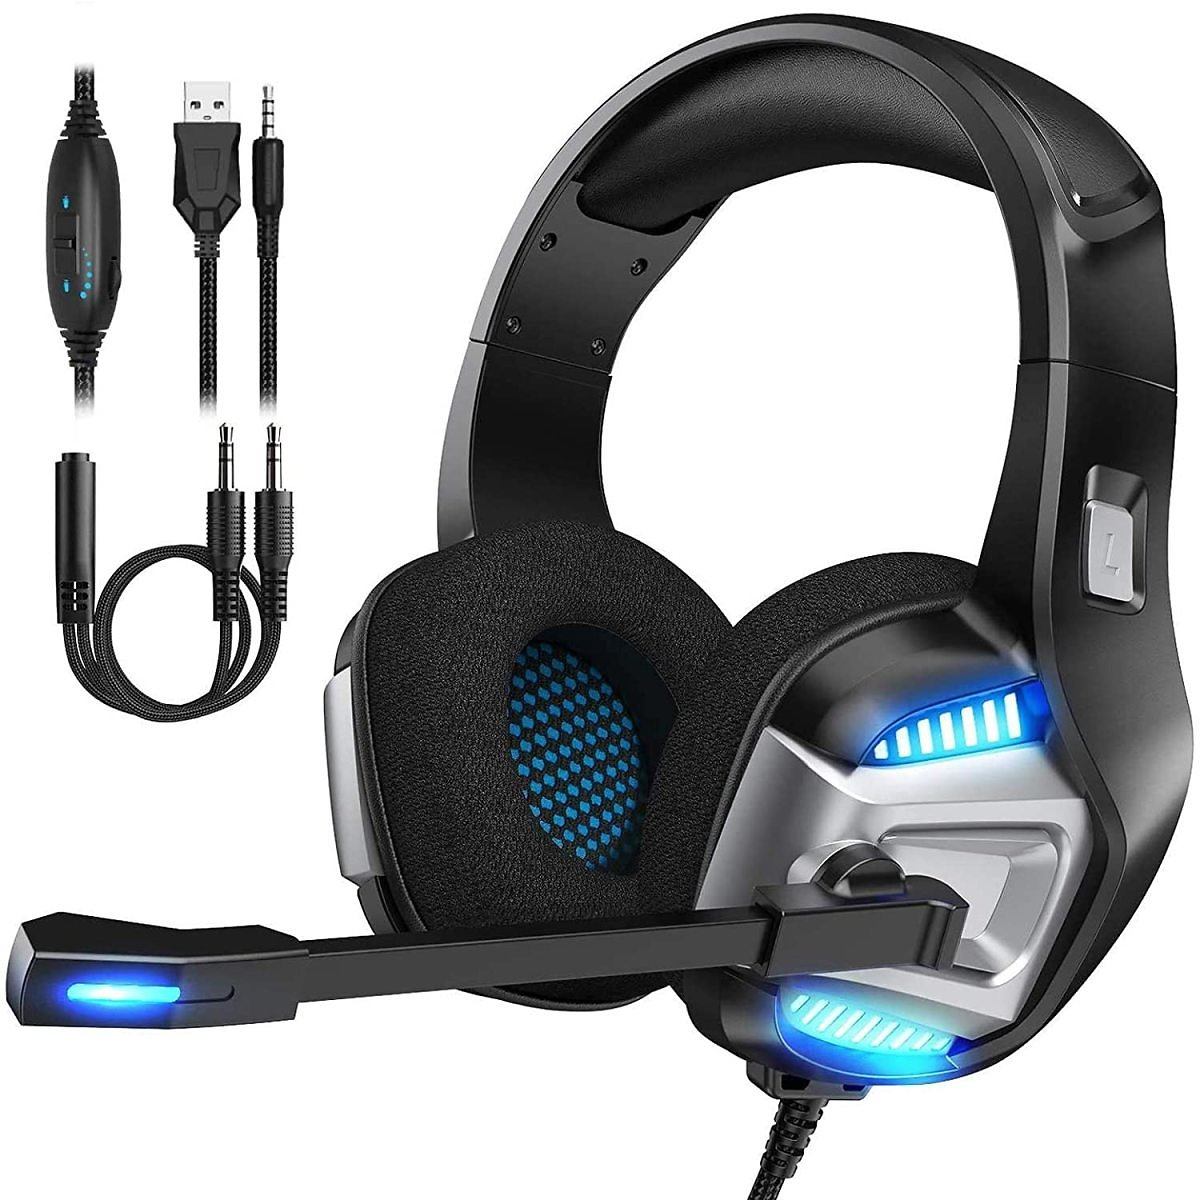 15% Discount - Gaming Headset for Xbox One, PS4 Gaming Headset with 7.1 Surround Sound Stereo